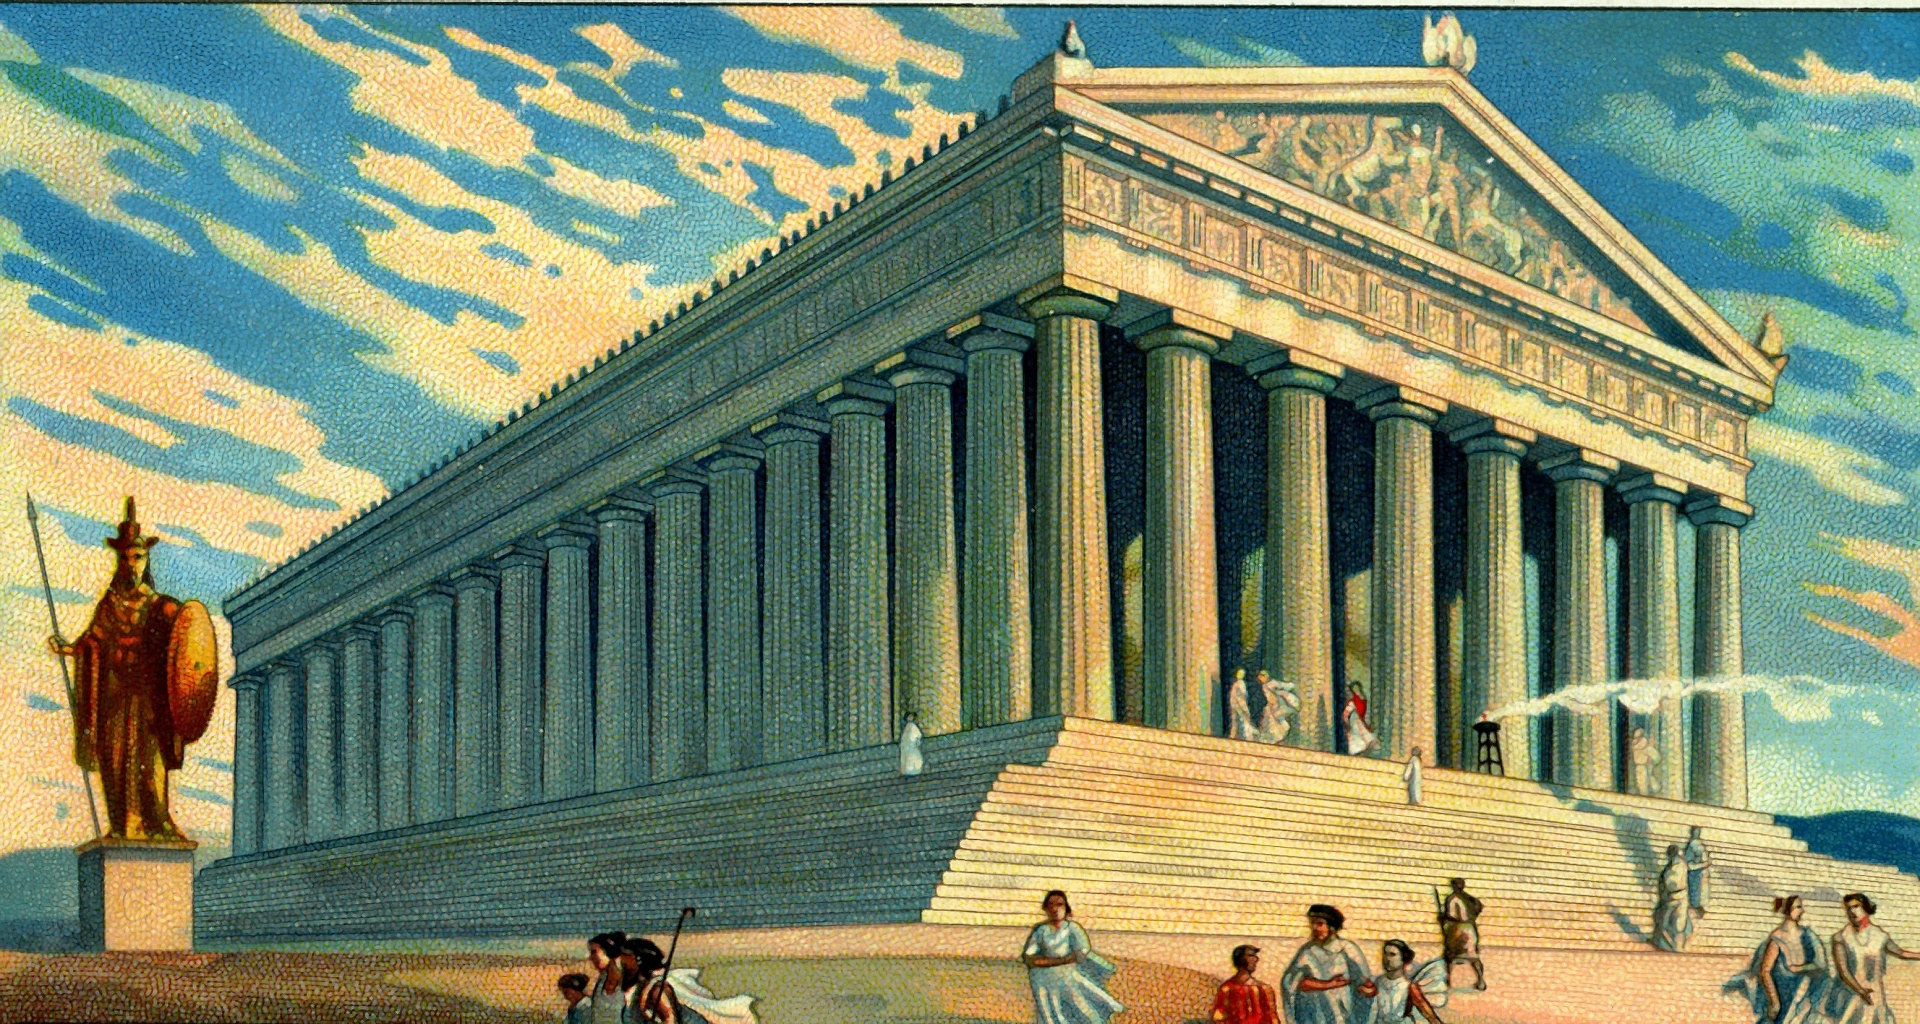 """""""The goddess Pallas Athena temple"""" , vintage engraving worked in PS. An illustration of the goddess Pallas Athena temple on a sunny day. In the foreground there is a statue on the right-hand side, on the left-hand side there are people traveling to and from the temple."""